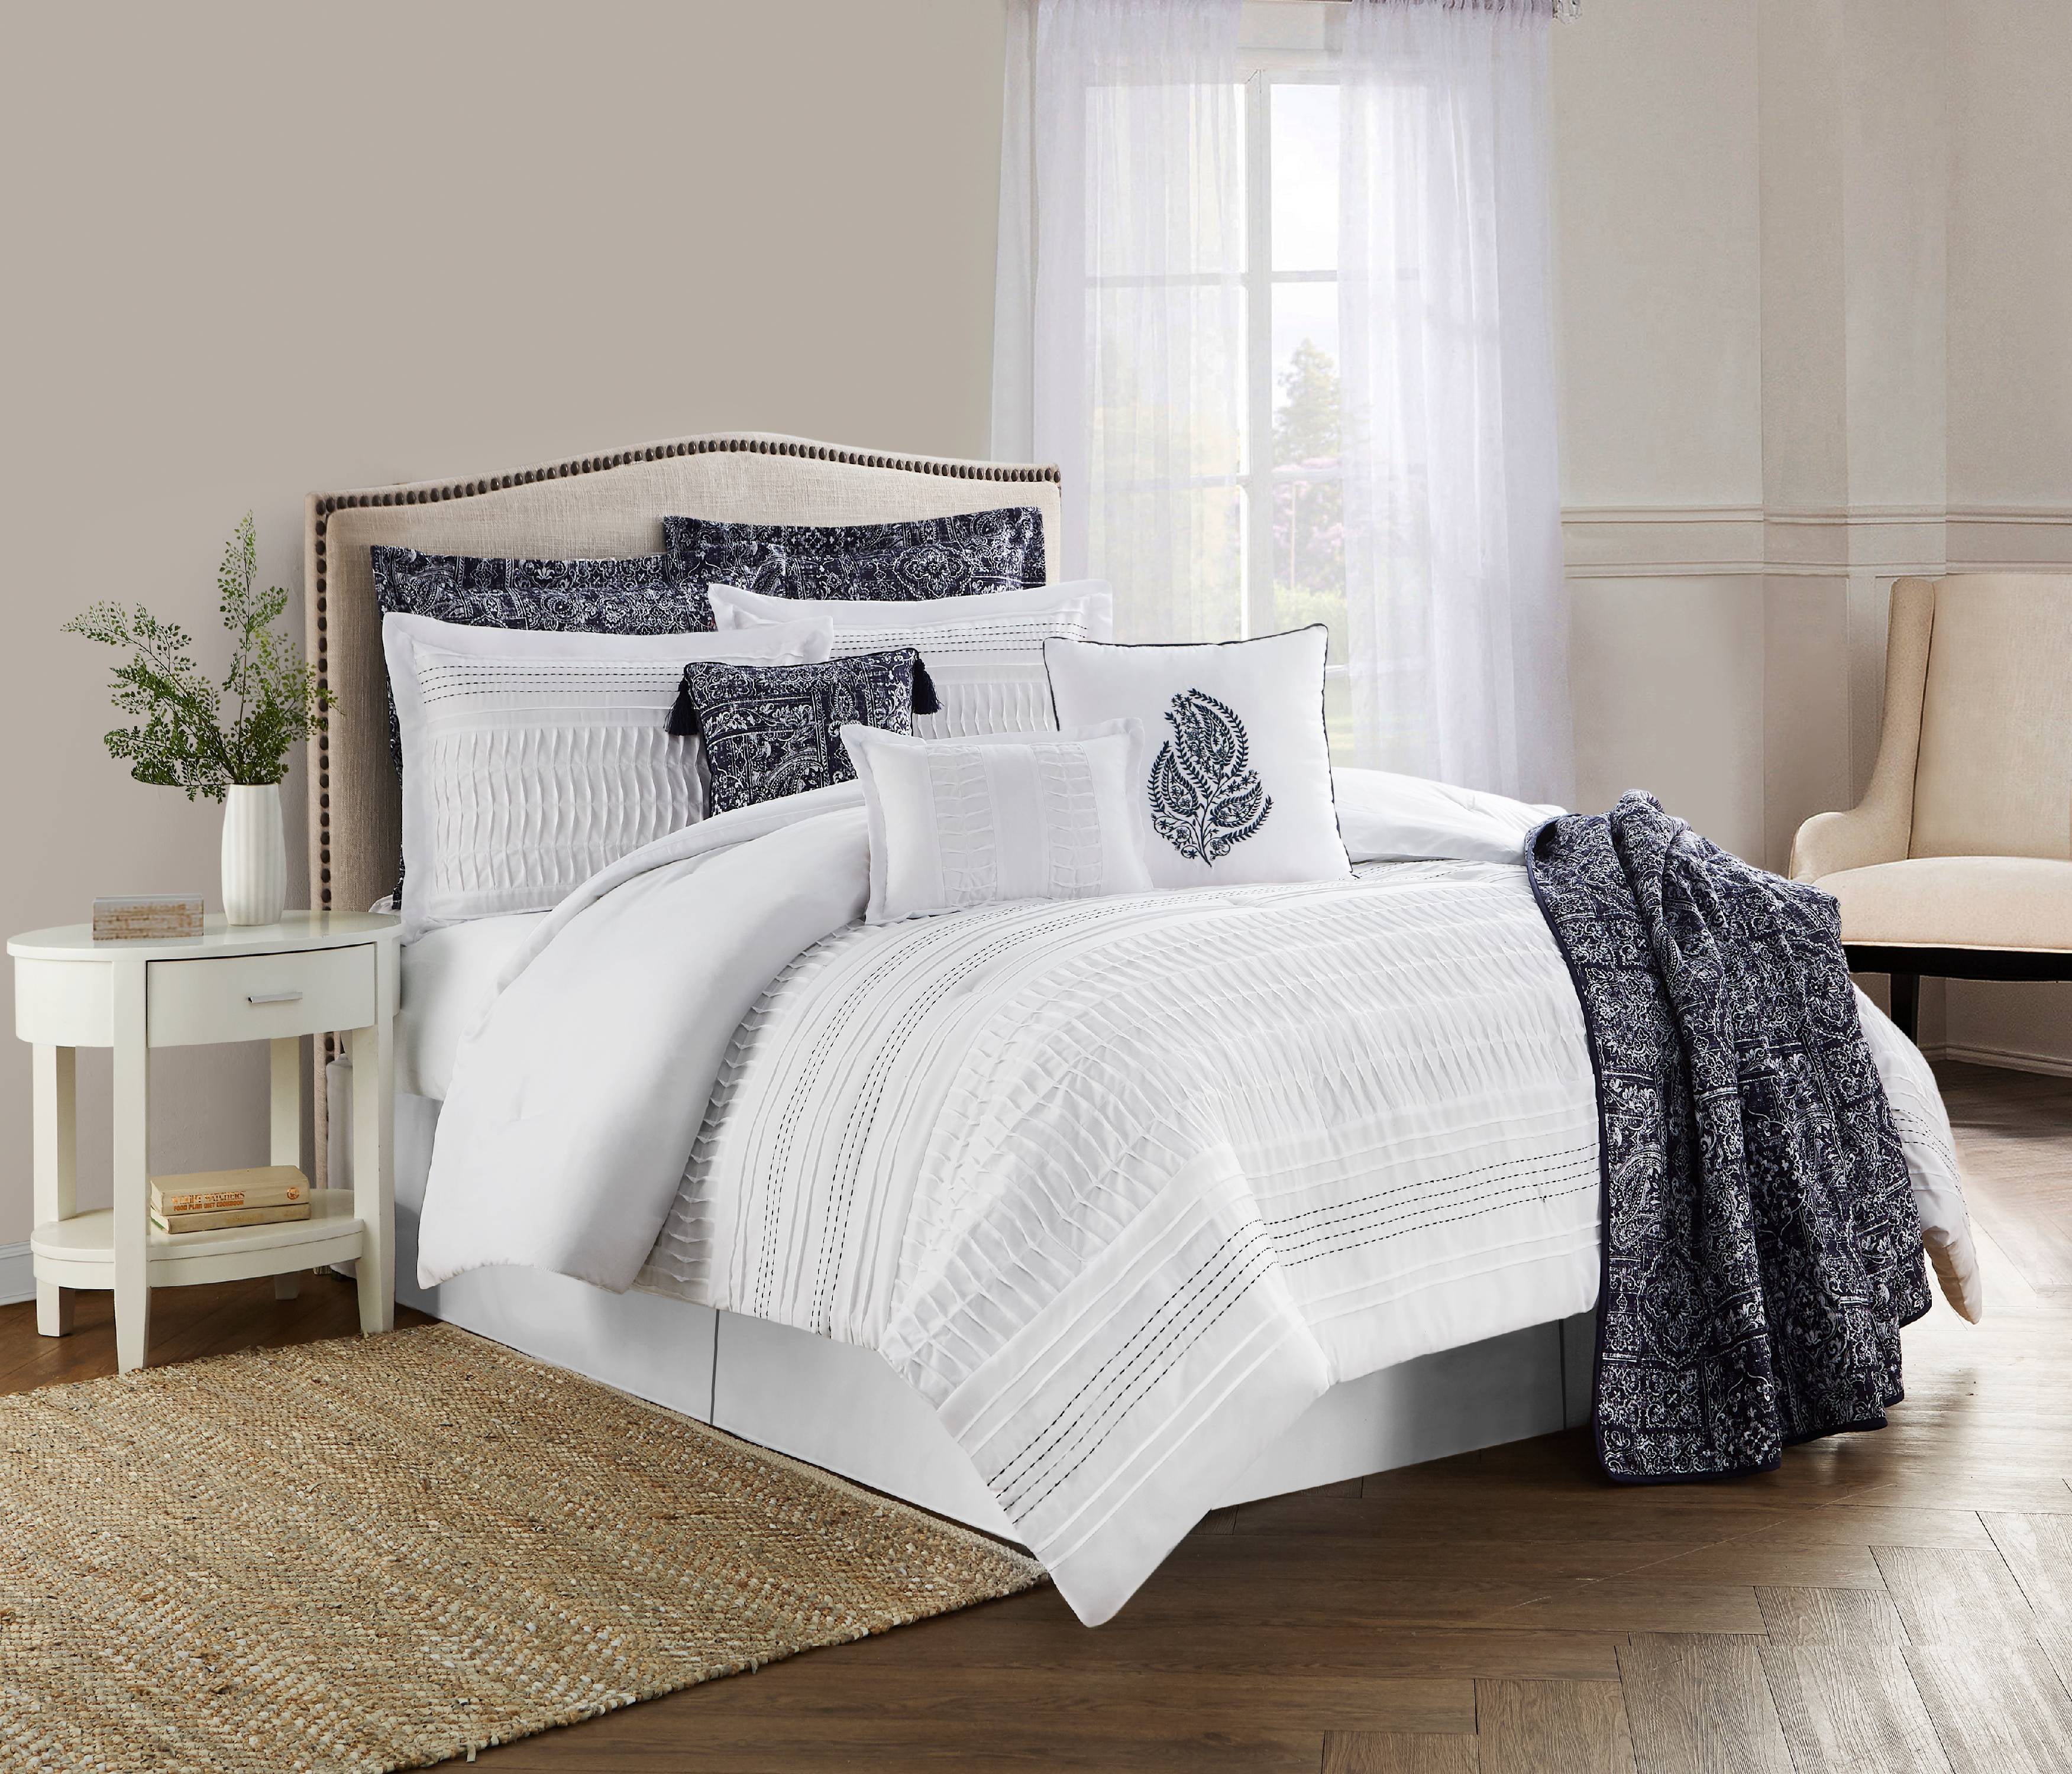 7-Piece Textured Paisley Striped Medallion Embroidery Comforter Set